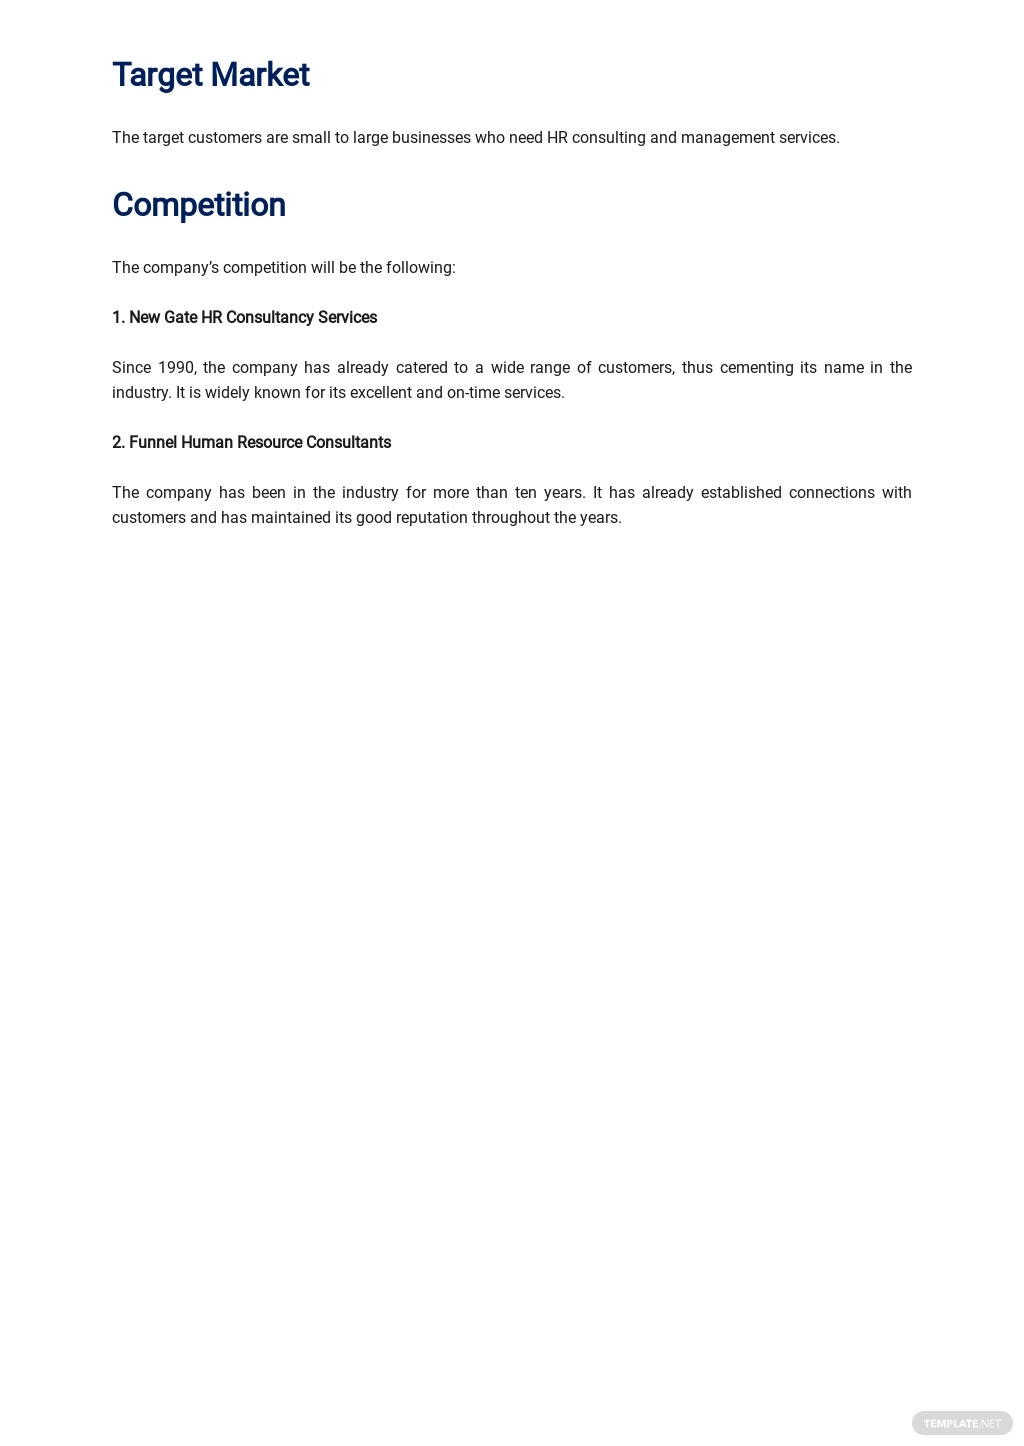 Sample Human Resources Consulting Business Plan 2.jpe